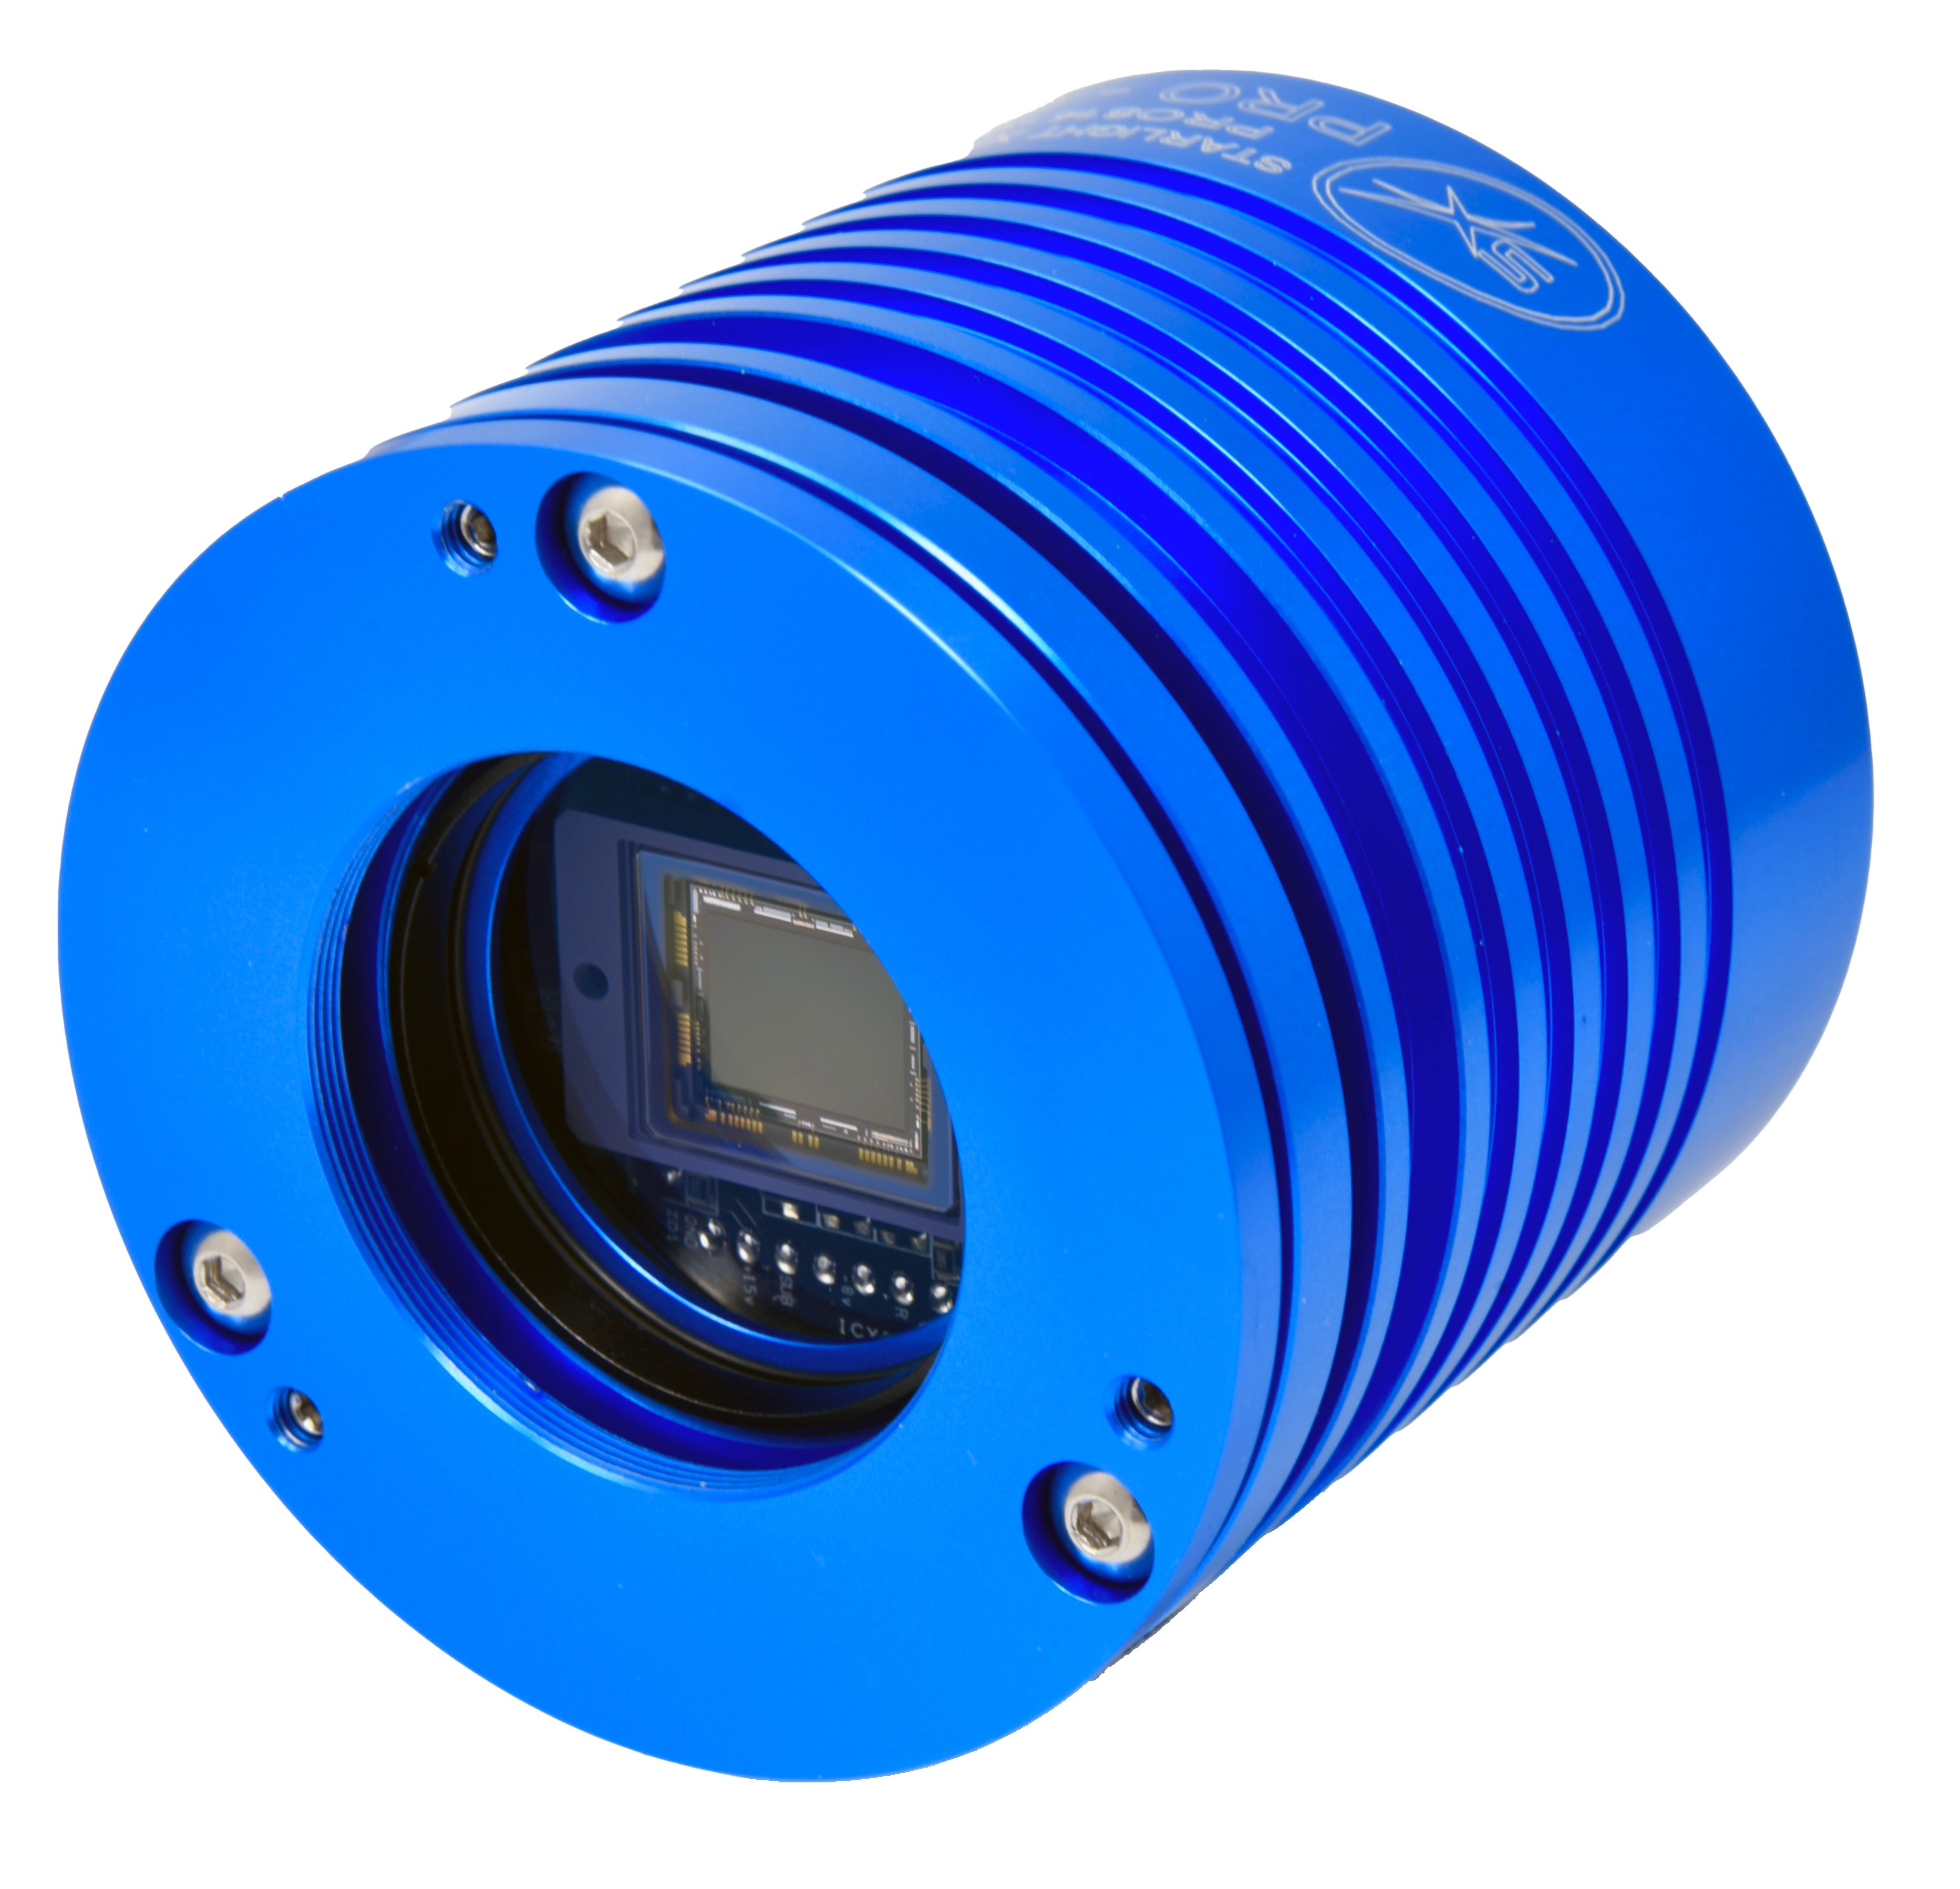 Starlight Xpress Blue Edition Trius PRO 814 Colour CCD Camera